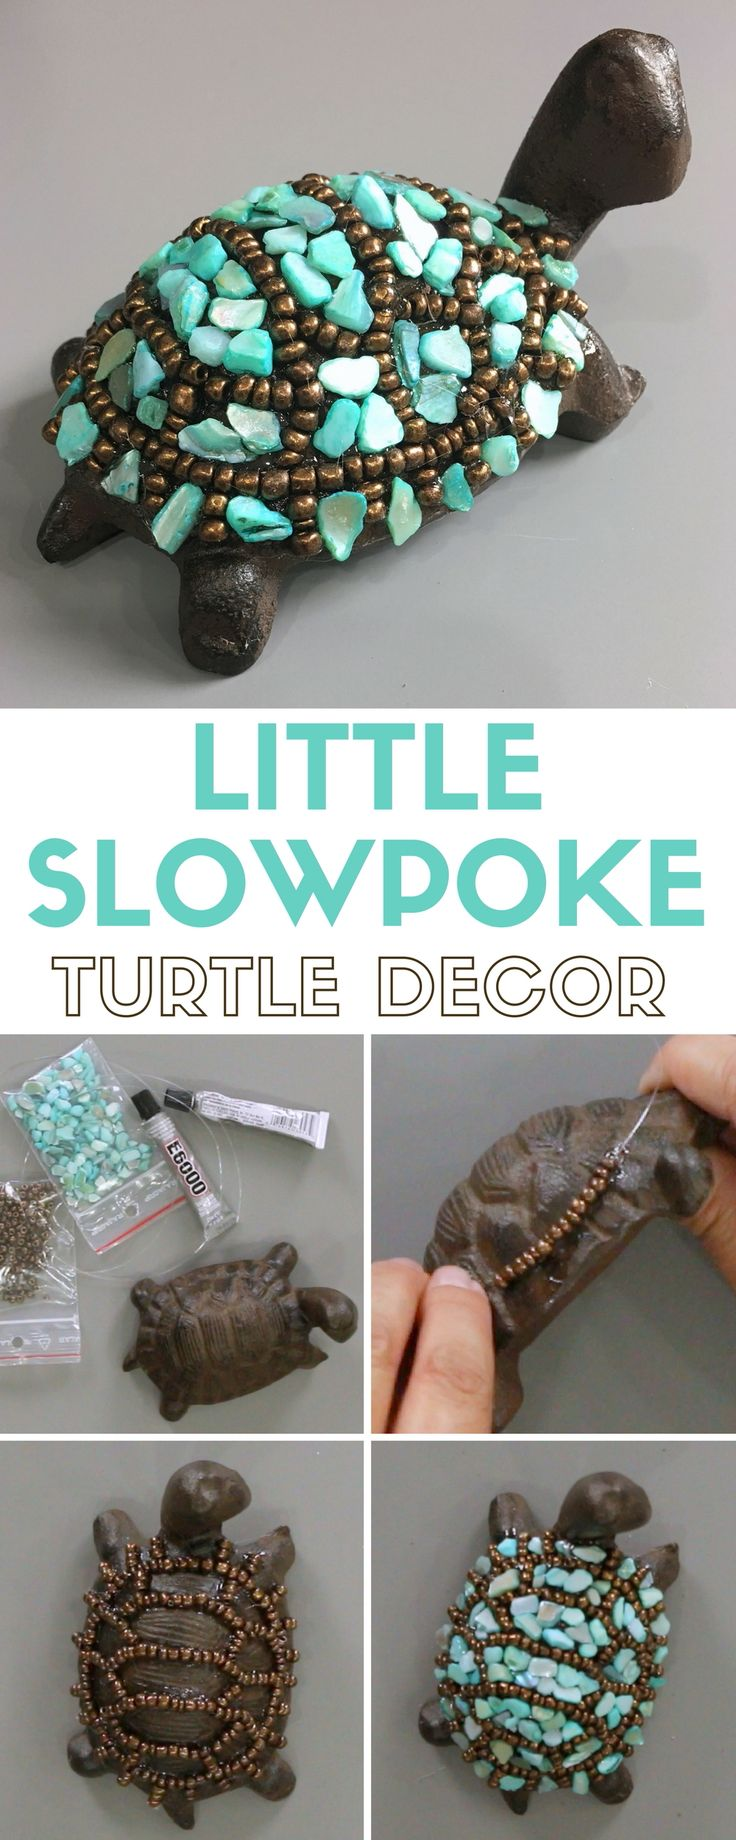 The pin junkie how to make paper bluebonnets - How To Make A Little Slowpoke Turtle Decor